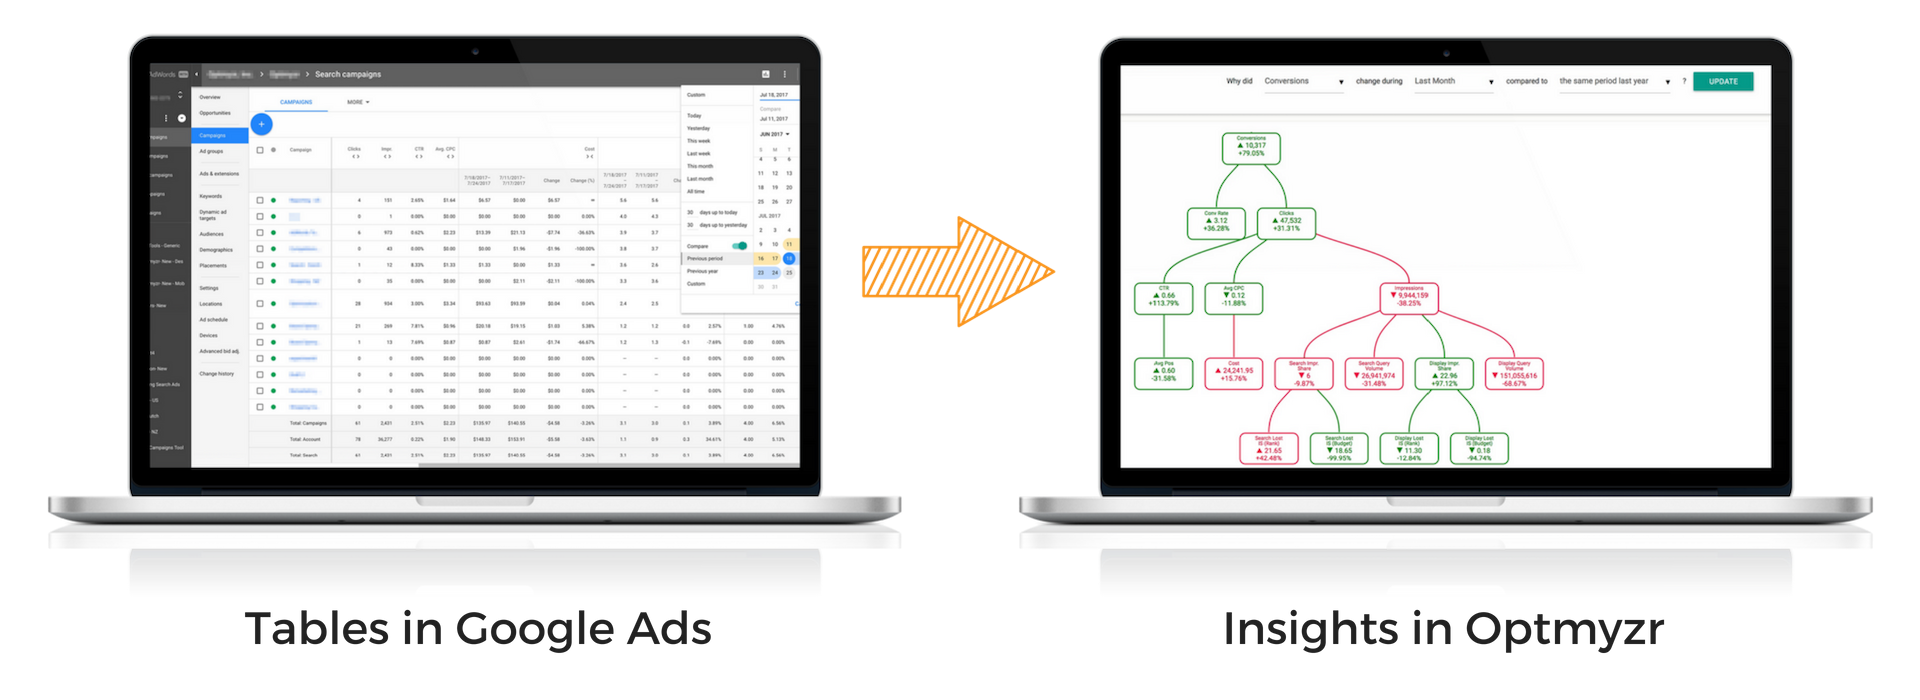 Optmyzr vs AdWords - Faster Insights From PPC Data